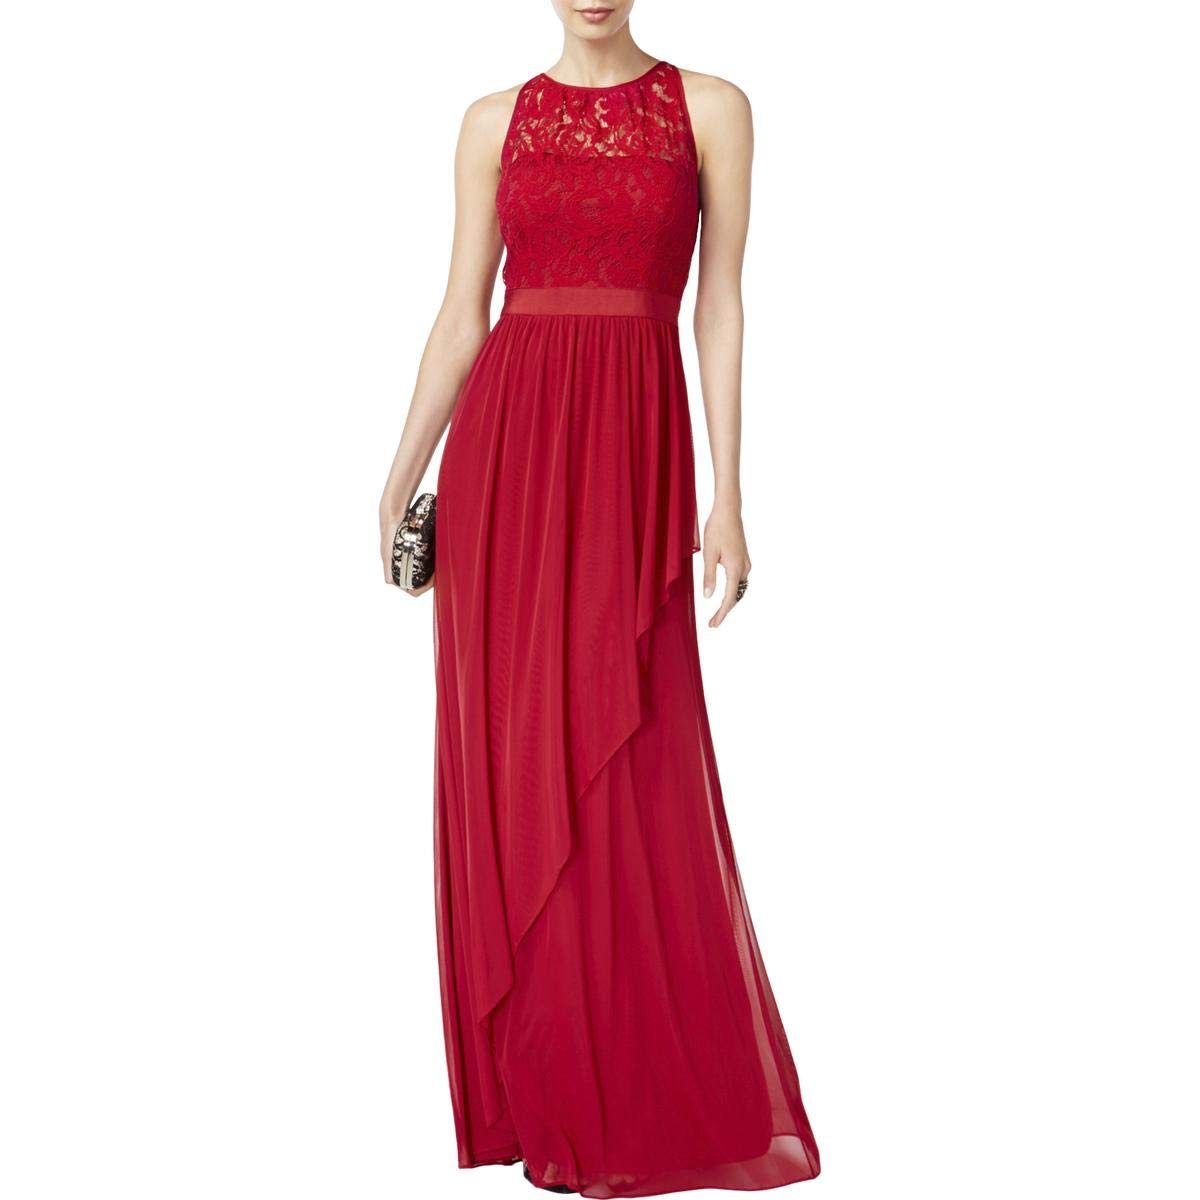 Cherry Adrianna Papell Womens Formal Lace Evening Dress